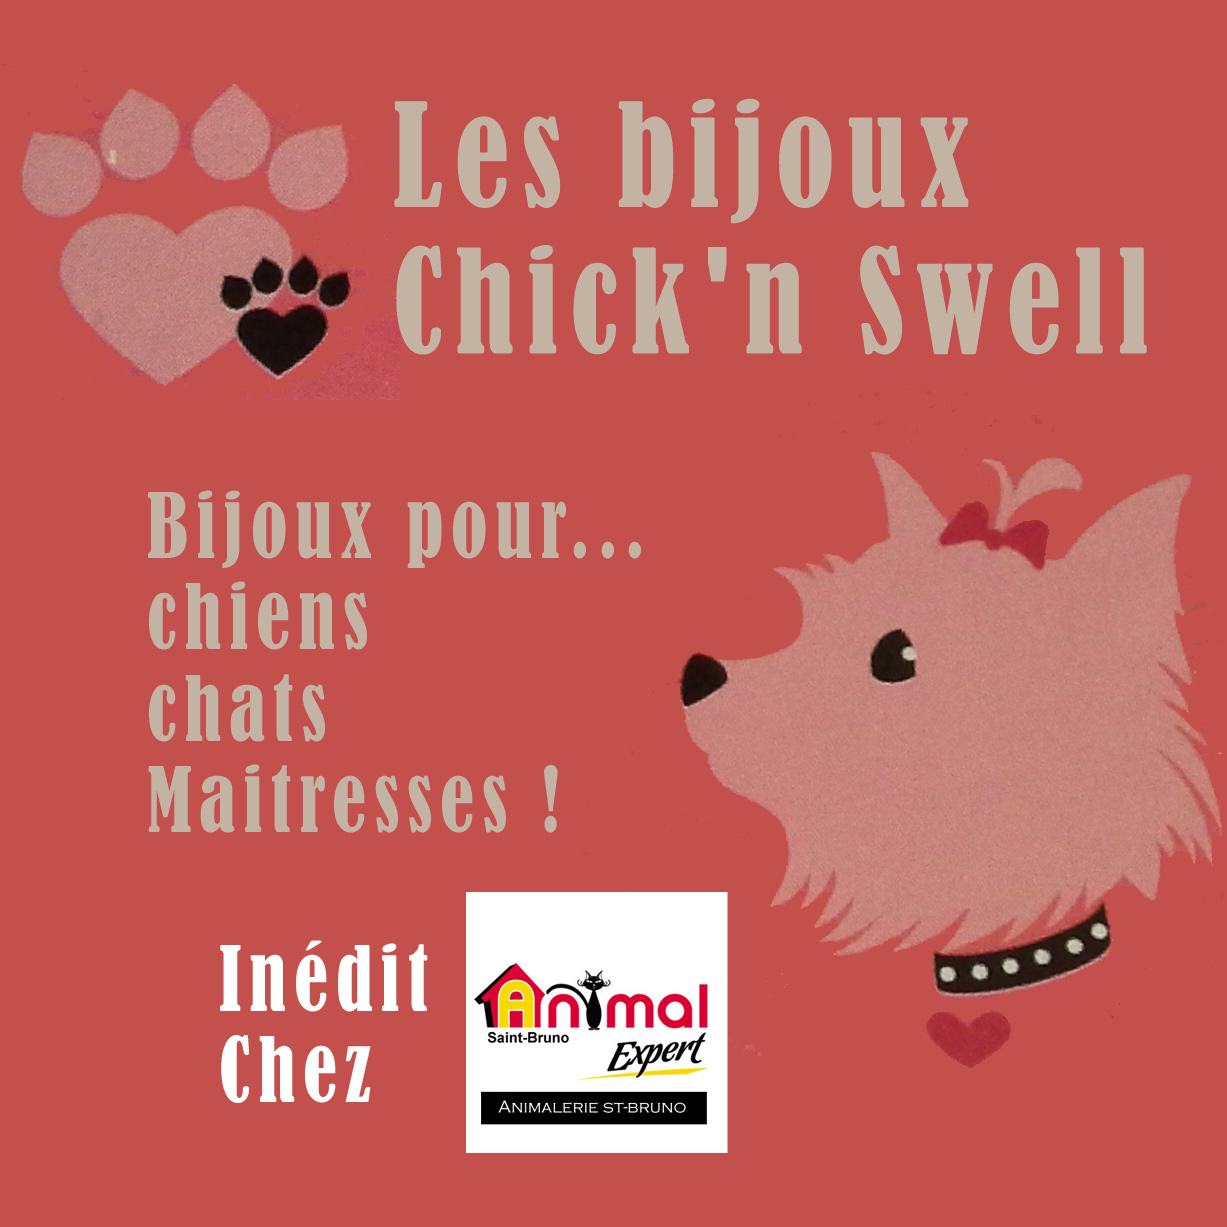 bijoux chick' swell chien, chats